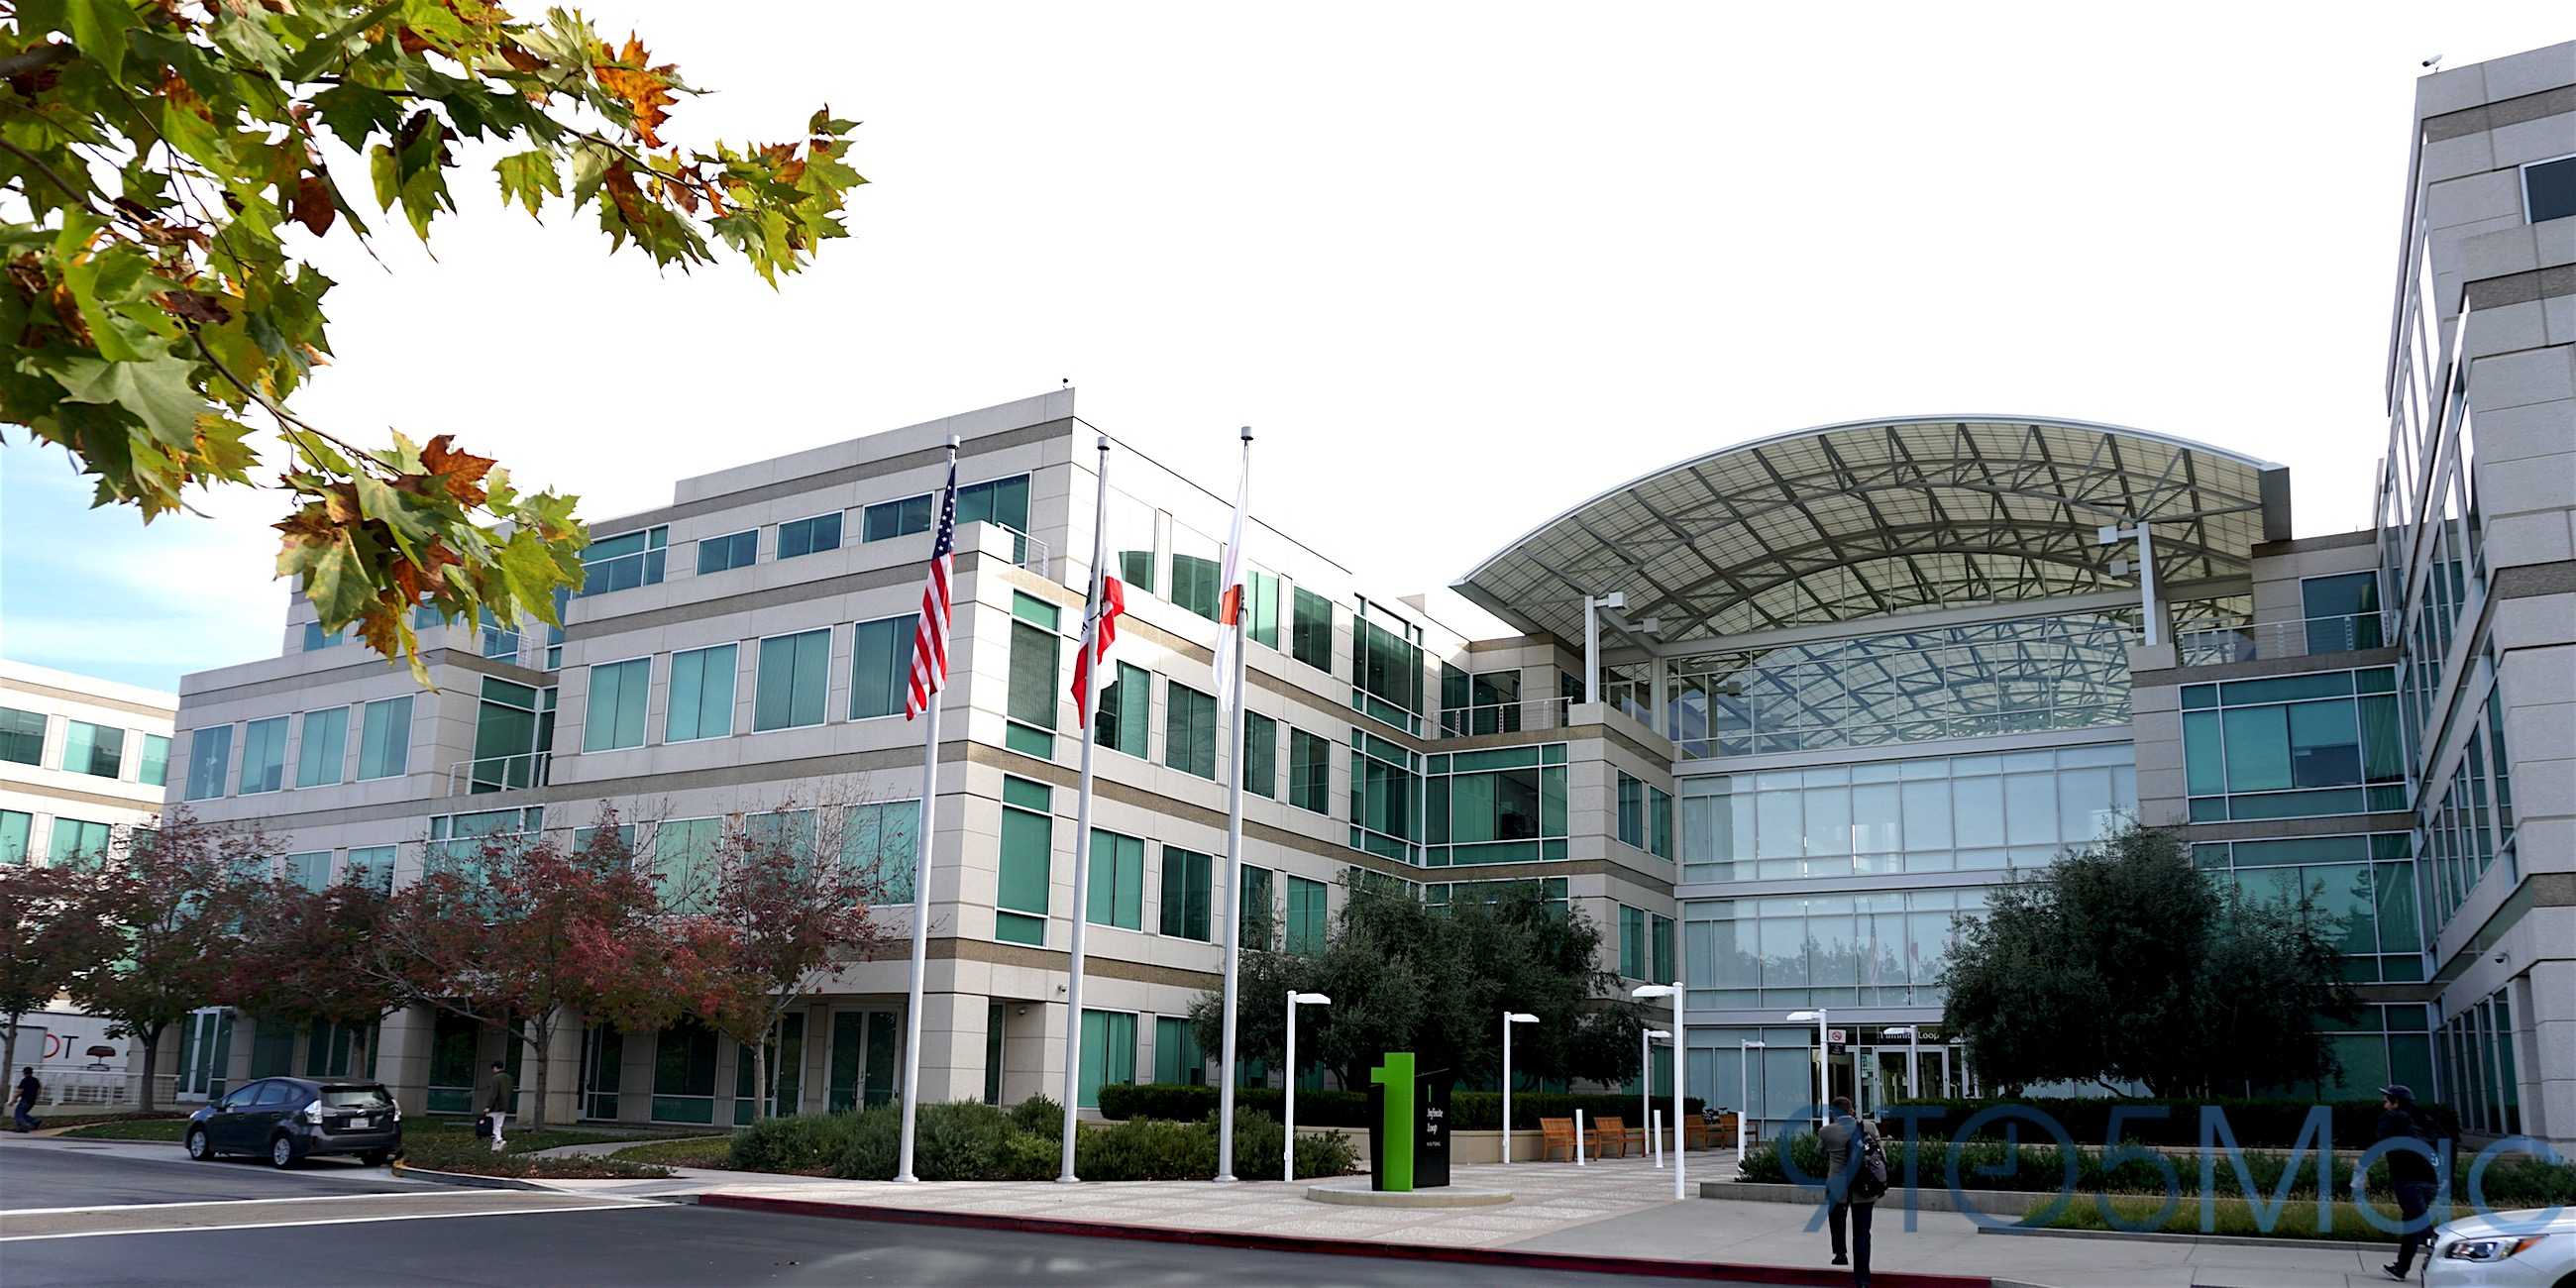 tim cook eddy cue and others share memories of steve jobs working at infinite loop more